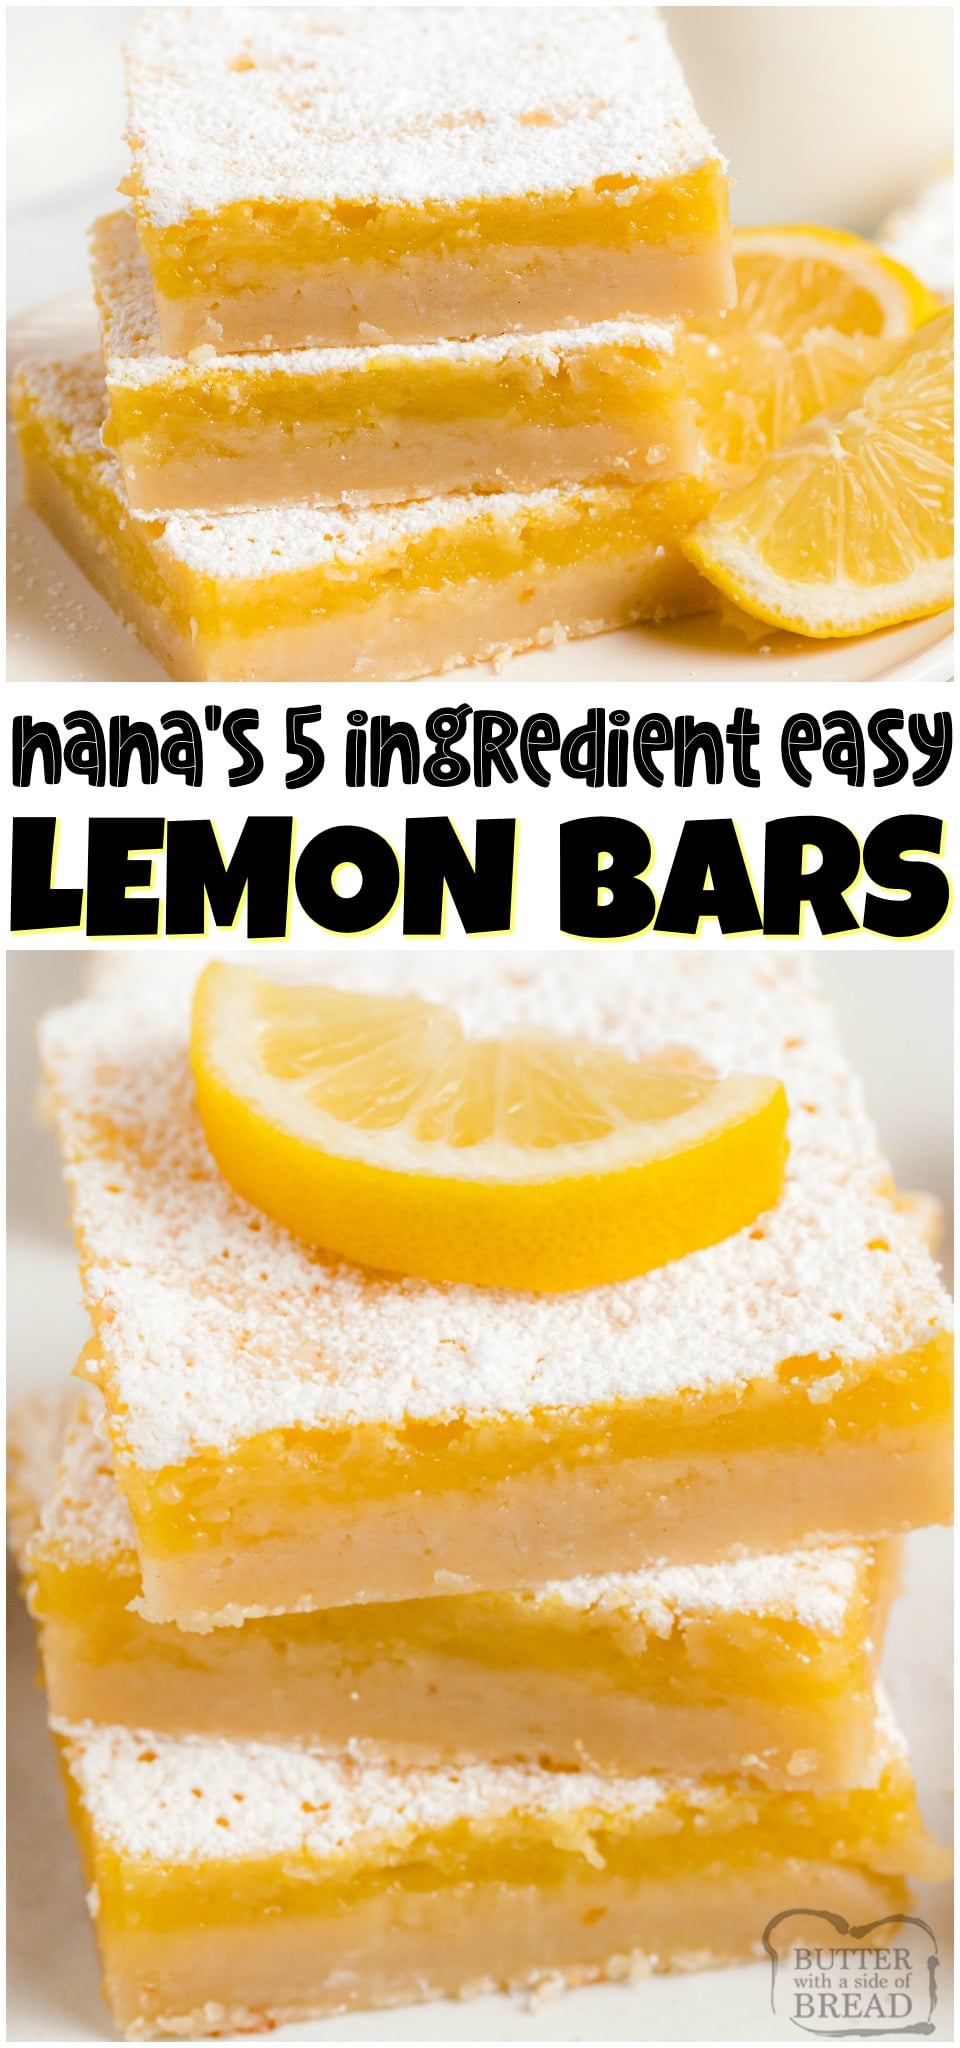 Easy Lemon Bars made with just 5 ingredients! Homemade Lemon Bars recipe made with butter, sugar, eggs and lemon juice for a tasty, tangy lemon dessert! #lemon #lemonbars #dessert #easyrecipe #easy #lemons #baking #recipe from BUTTER WITH A SIDE OF BREAD